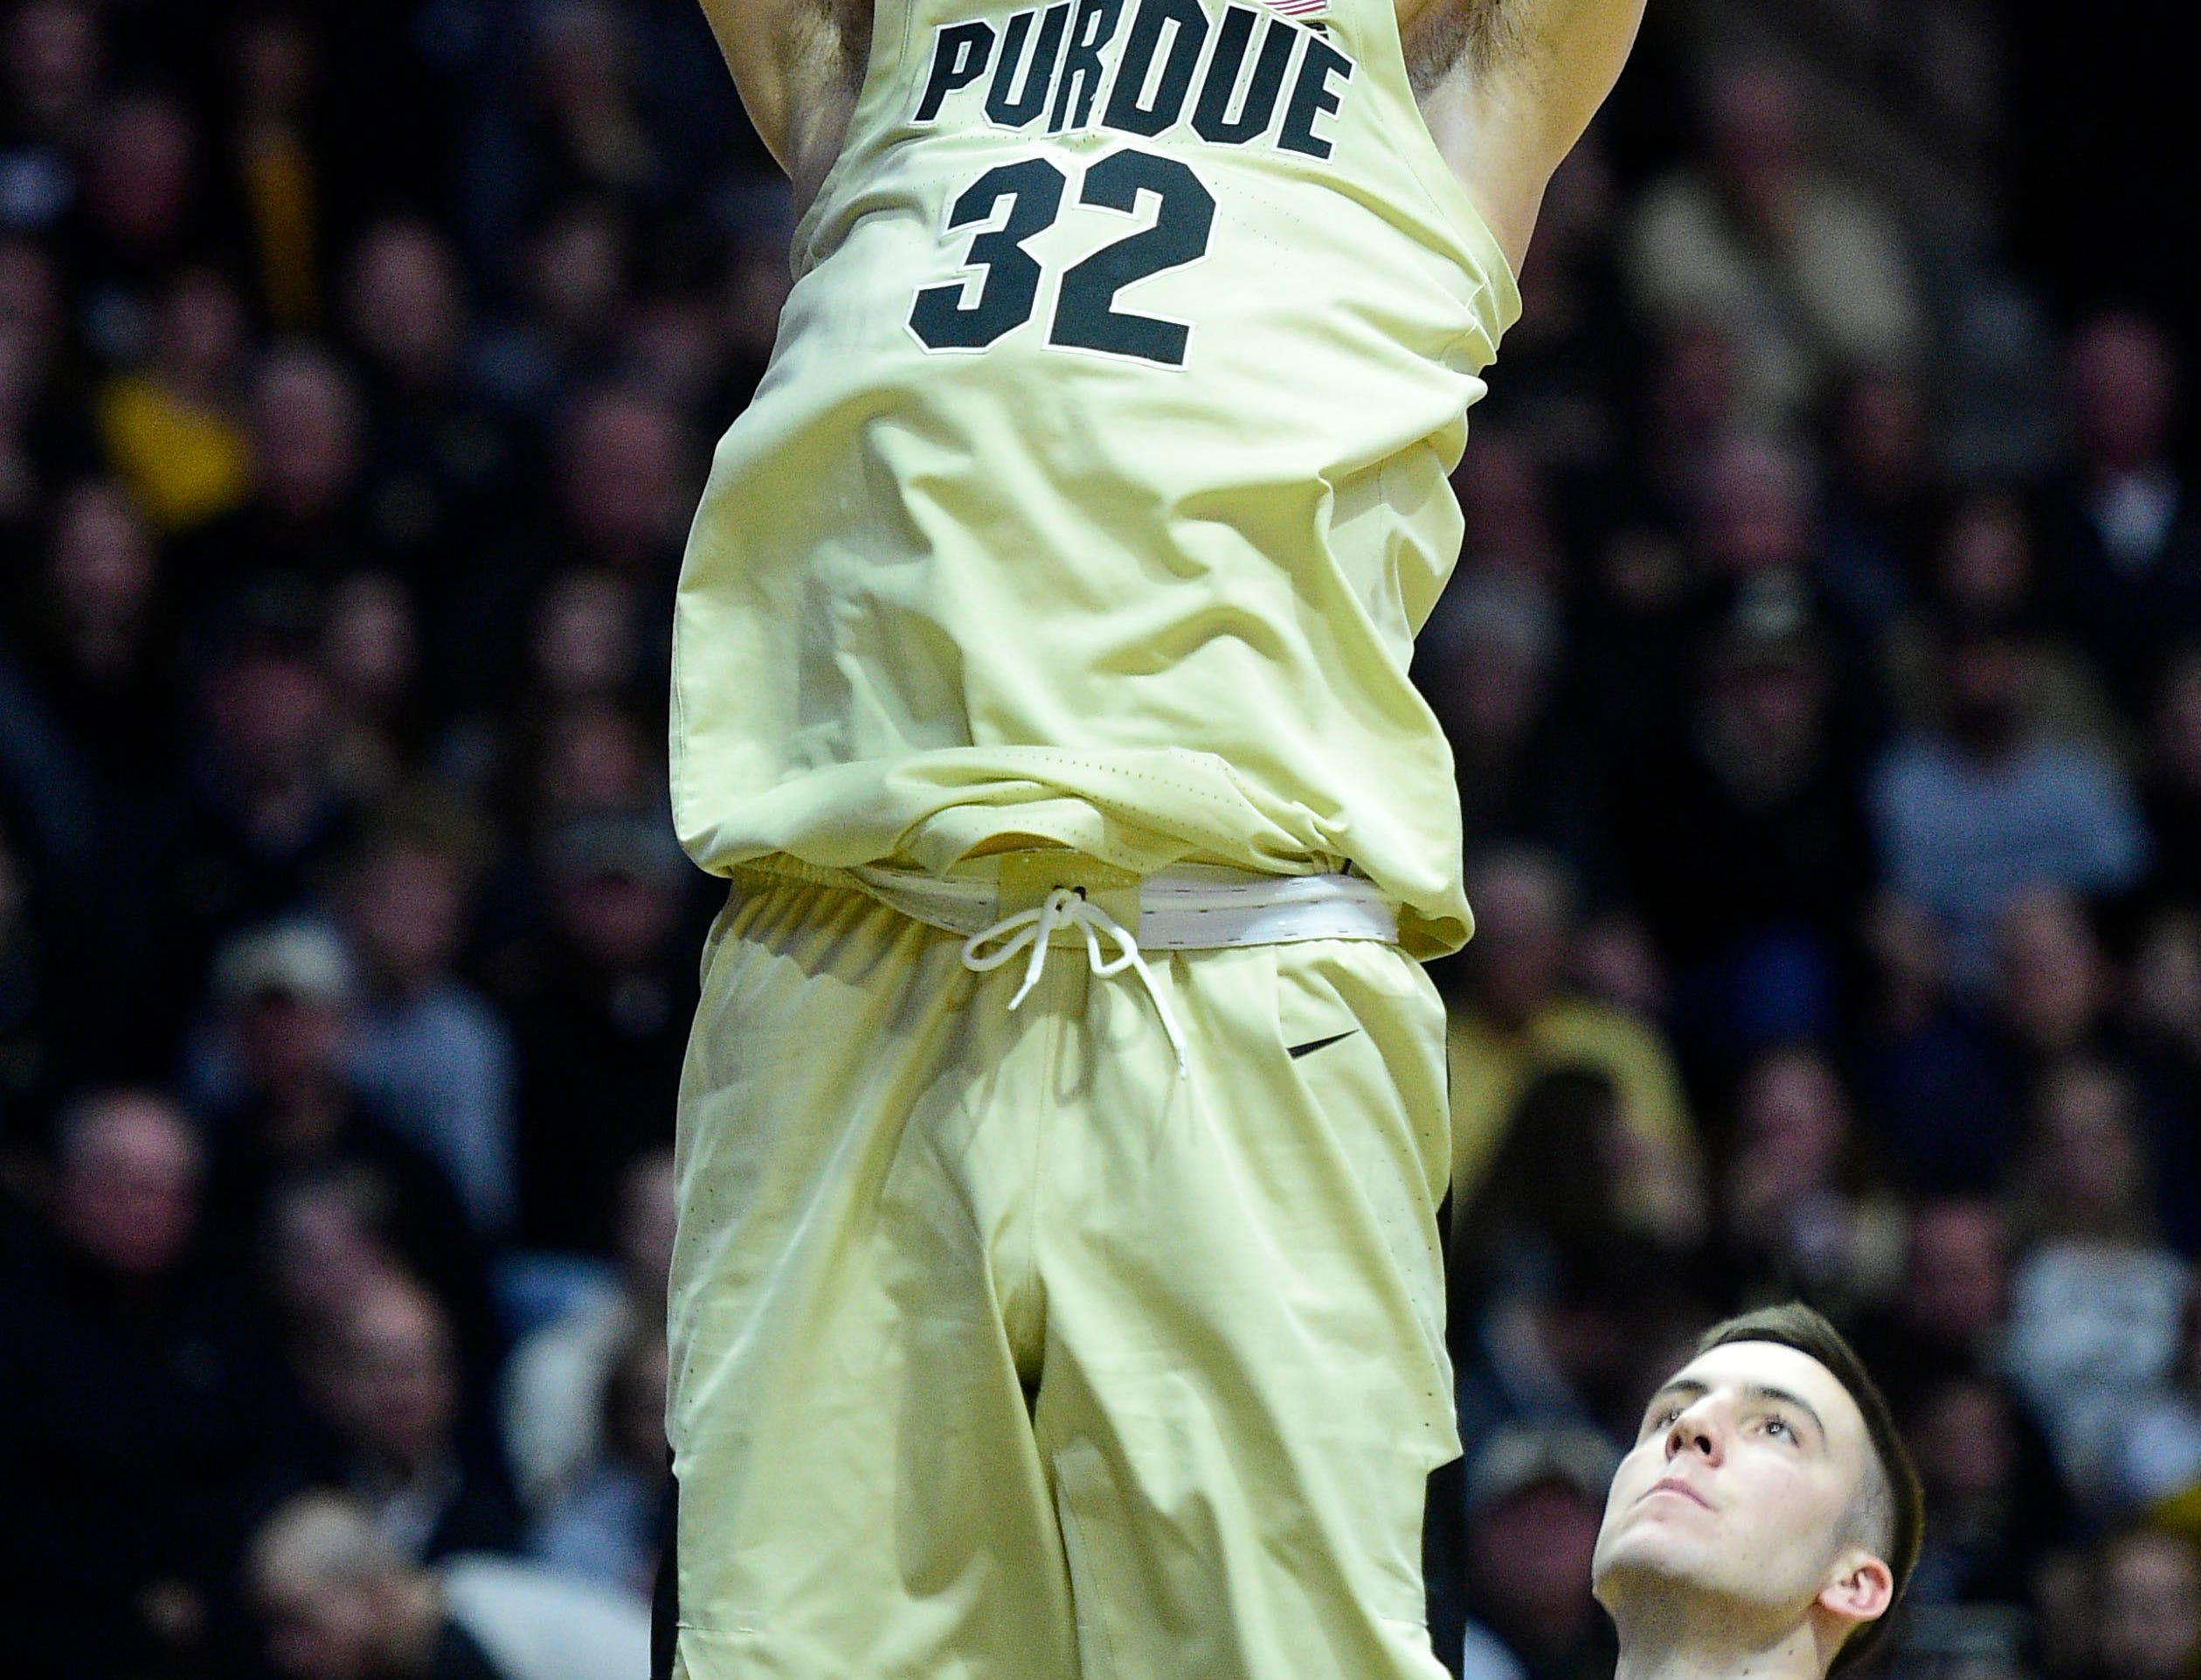 Jan 3, 2019; West Lafayette, IN, USA; Purdue Boilermakers center Matt Haarms (32) slam dunks in the second half against the Iowa Hawkeyes at Mackey Arena. Mandatory Credit: Thomas J. Russo-USA TODAY Sports